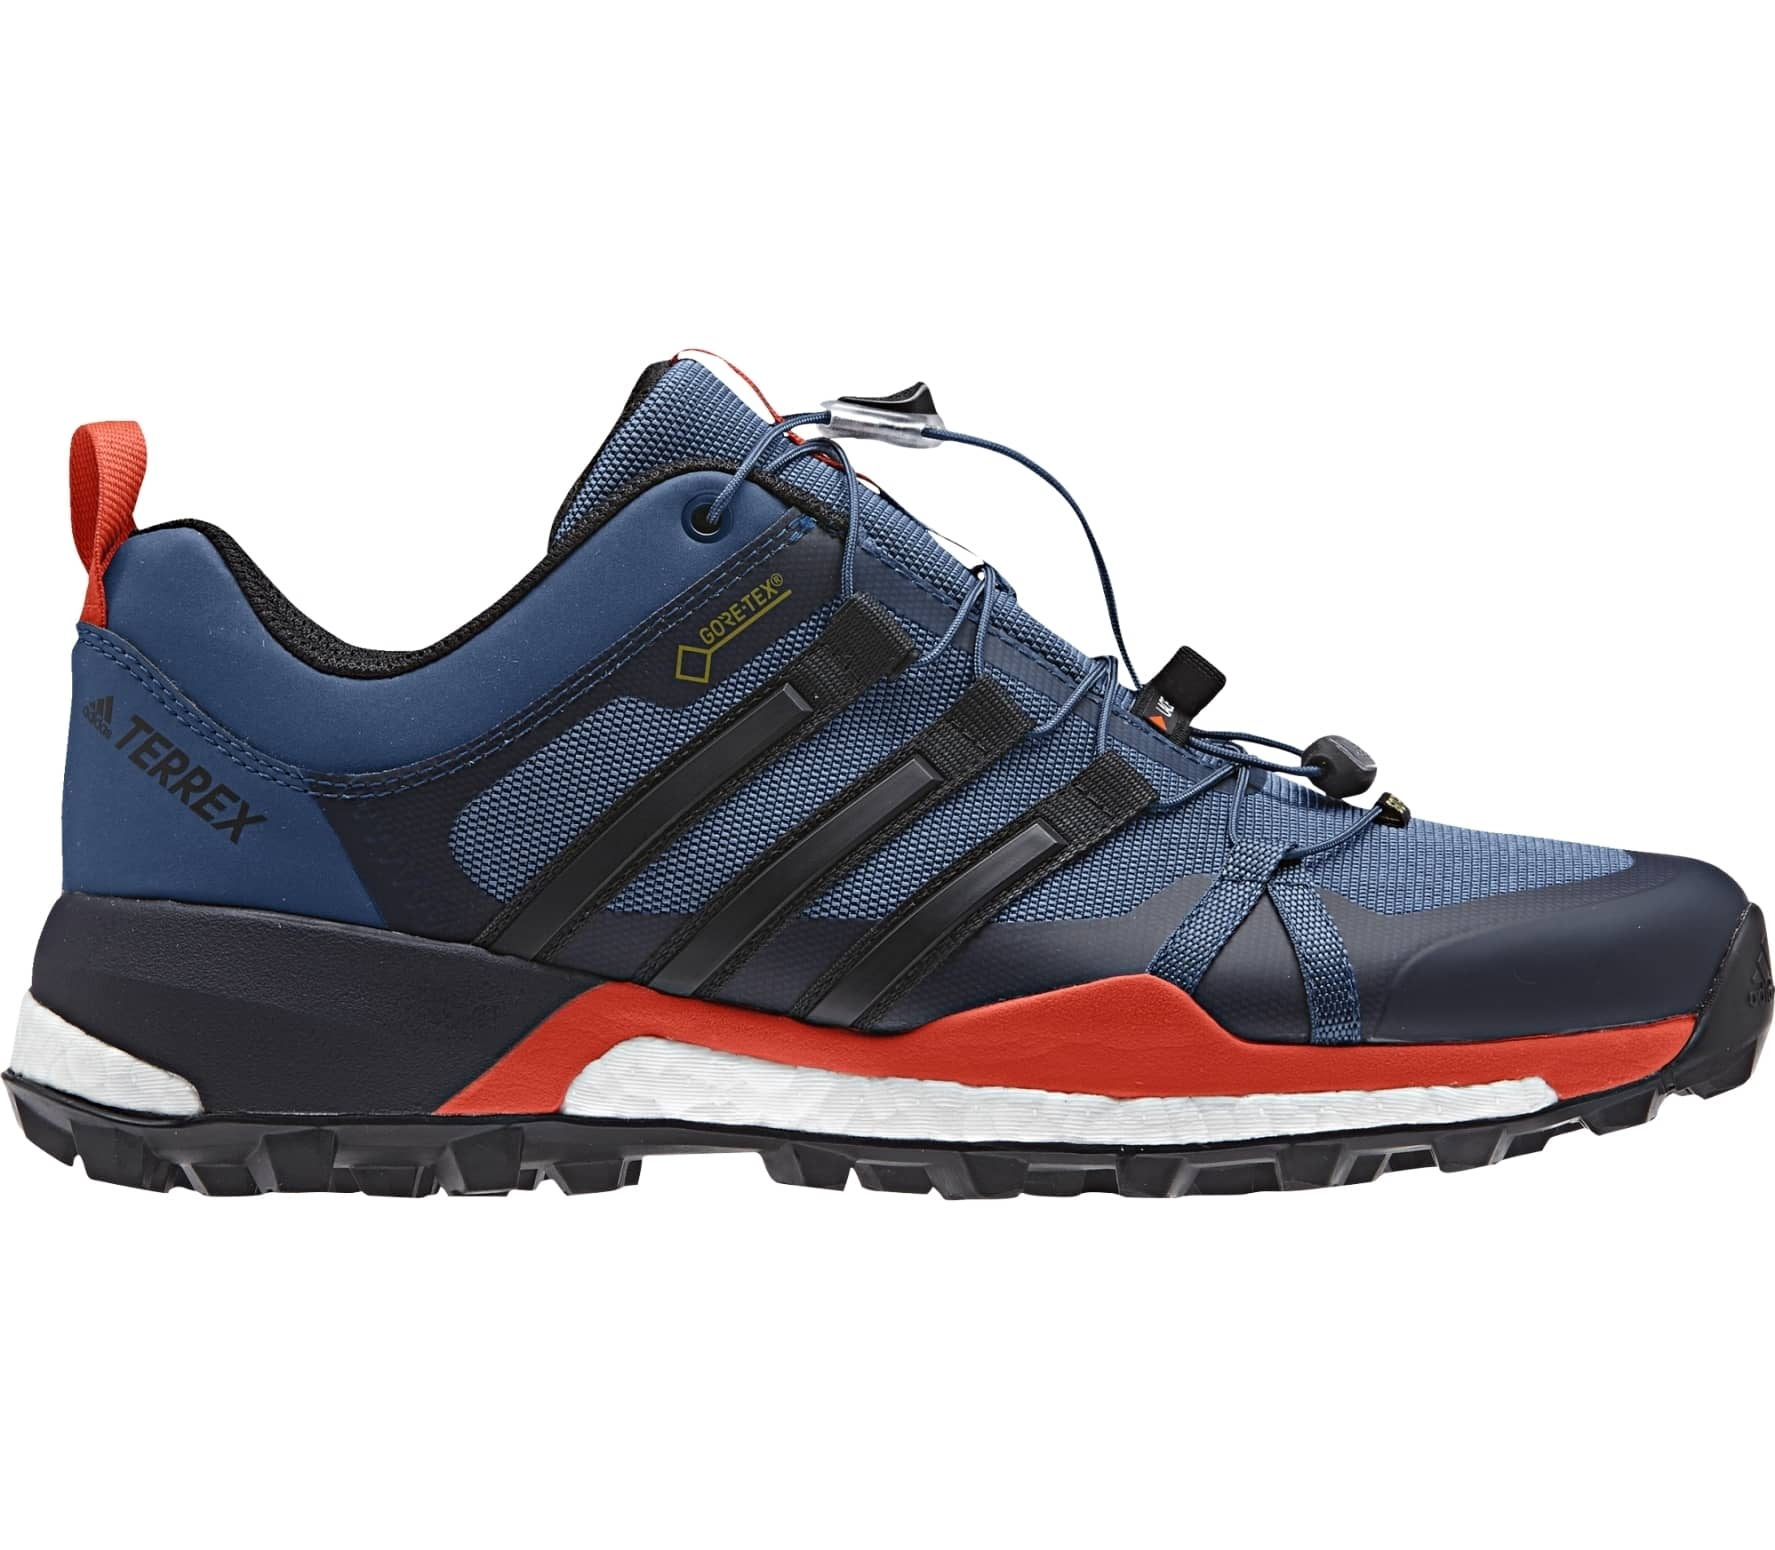 Adidas - Terrex Skychaser GTX men s trail running shoes (dark blue ... 63108e5a8de